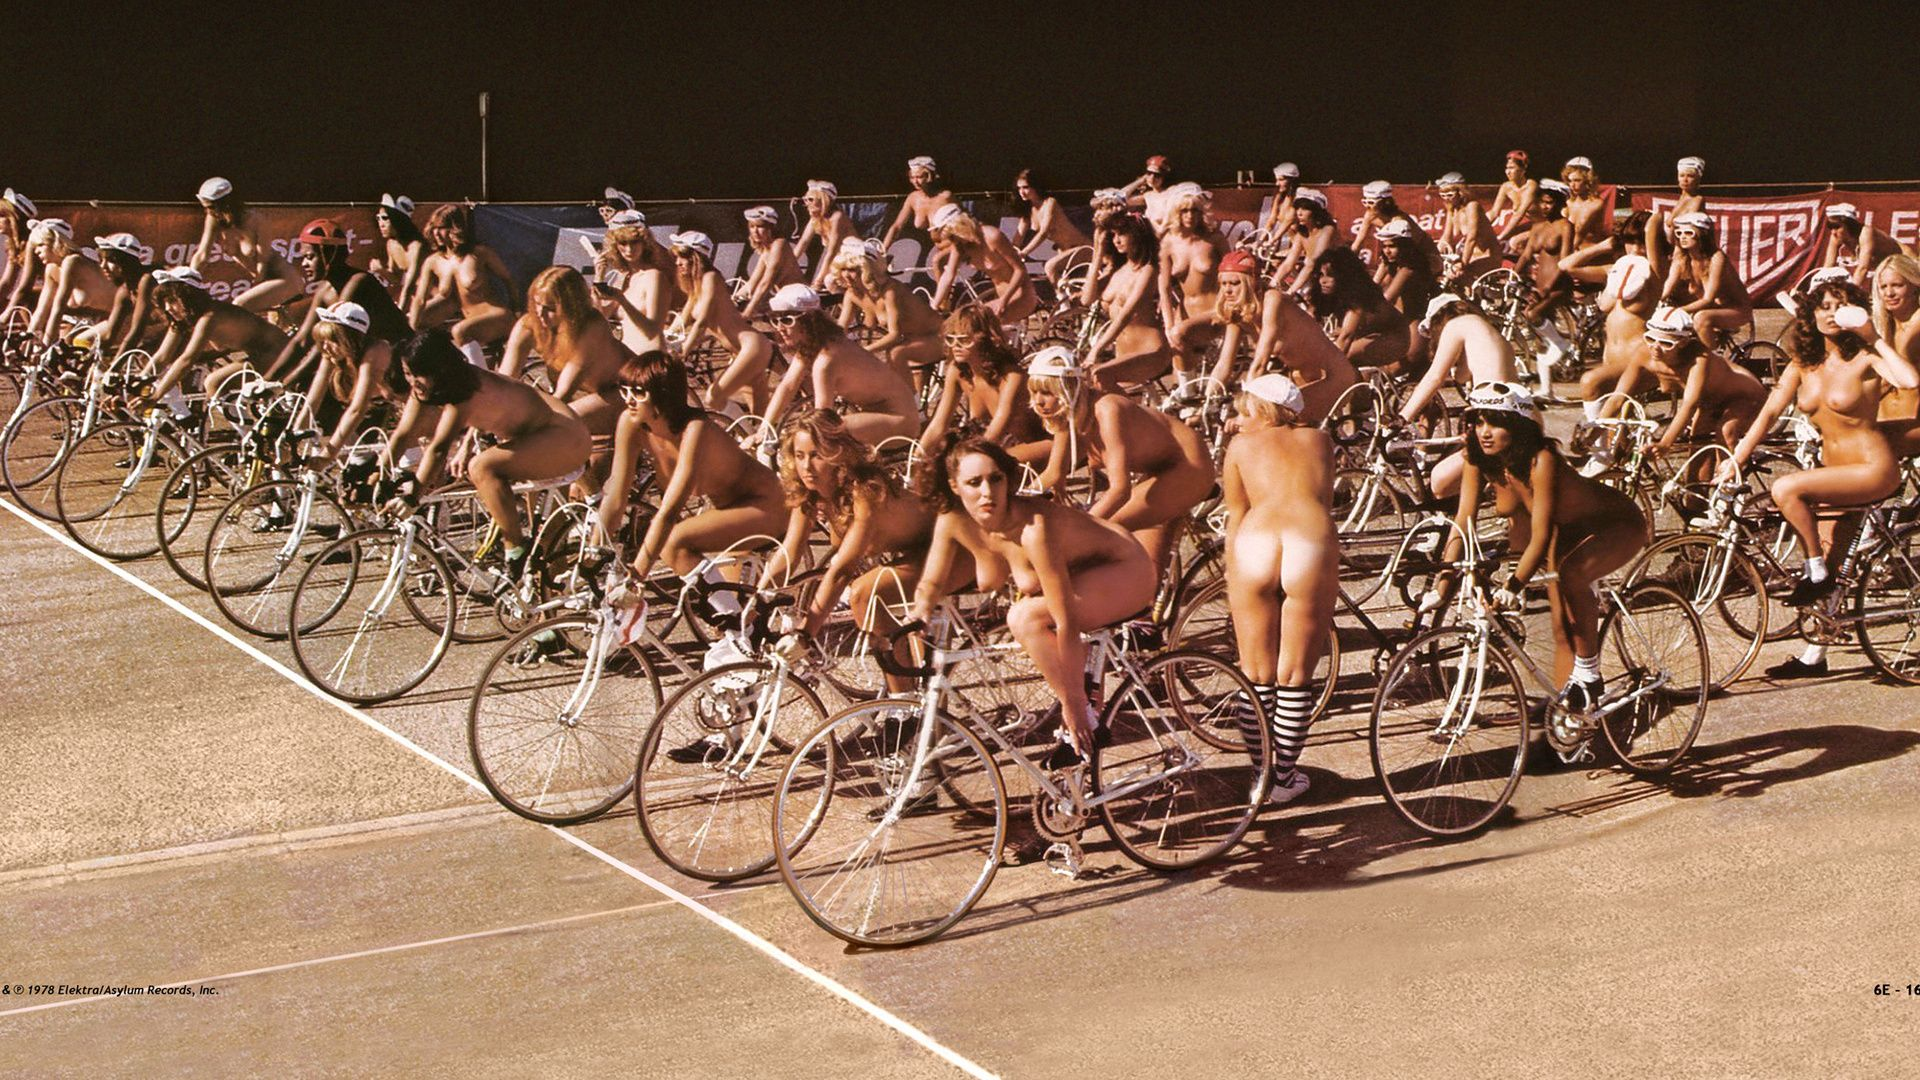 Rock Of Love Girls Uncensored Amazing queen - bicycle race (uncensored version) | rockpopbluesjazzsoul